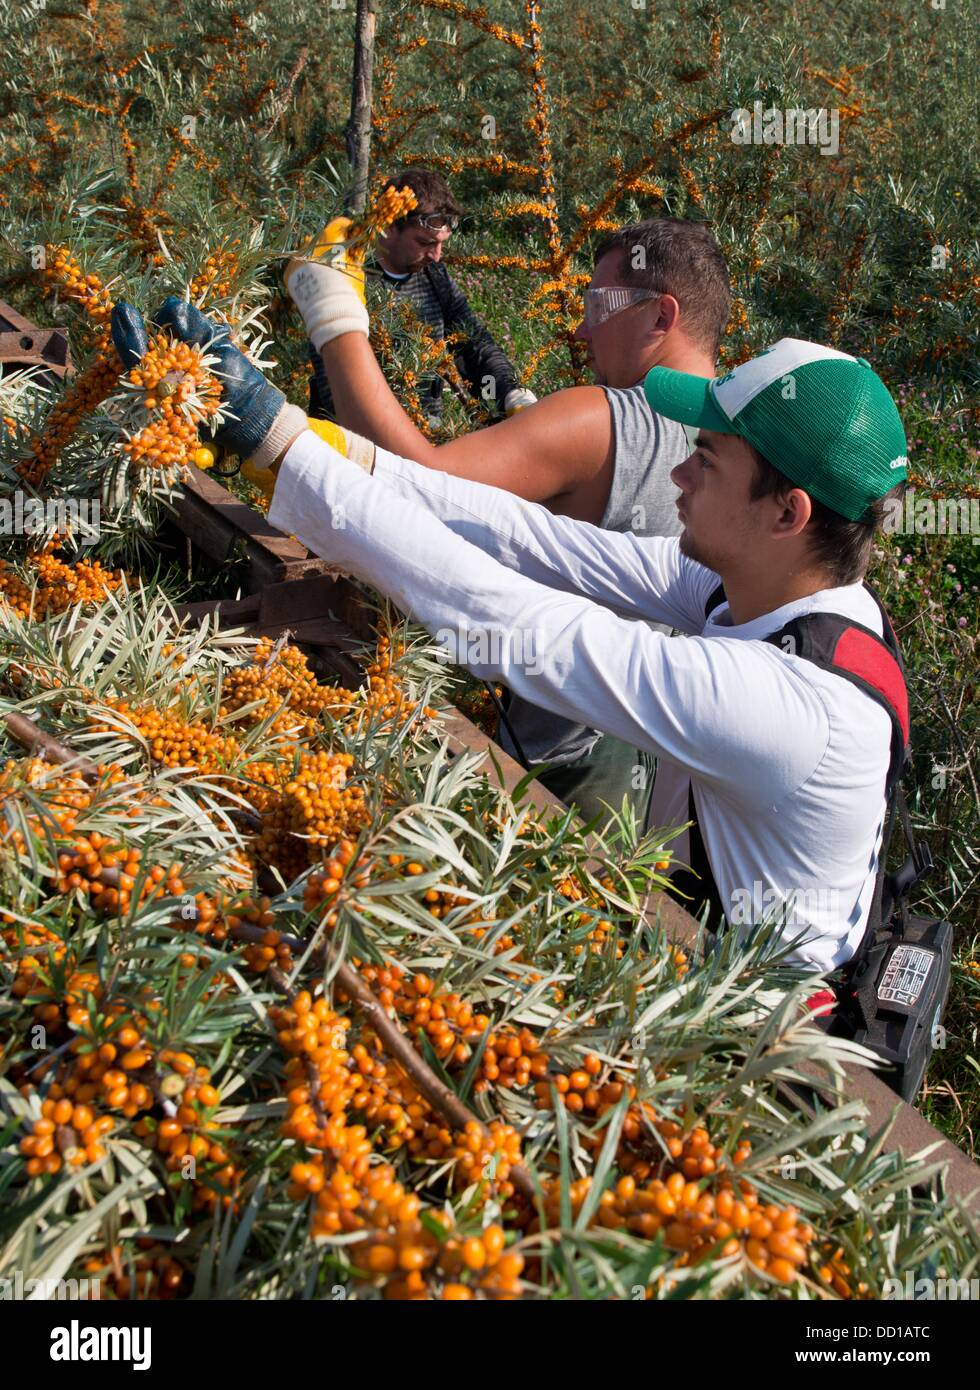 Tempelberg, Germany. 23rd Aug, 2013. Polish season workers harvest branches with ripe sea-buskthorn berries on a - Stock Image